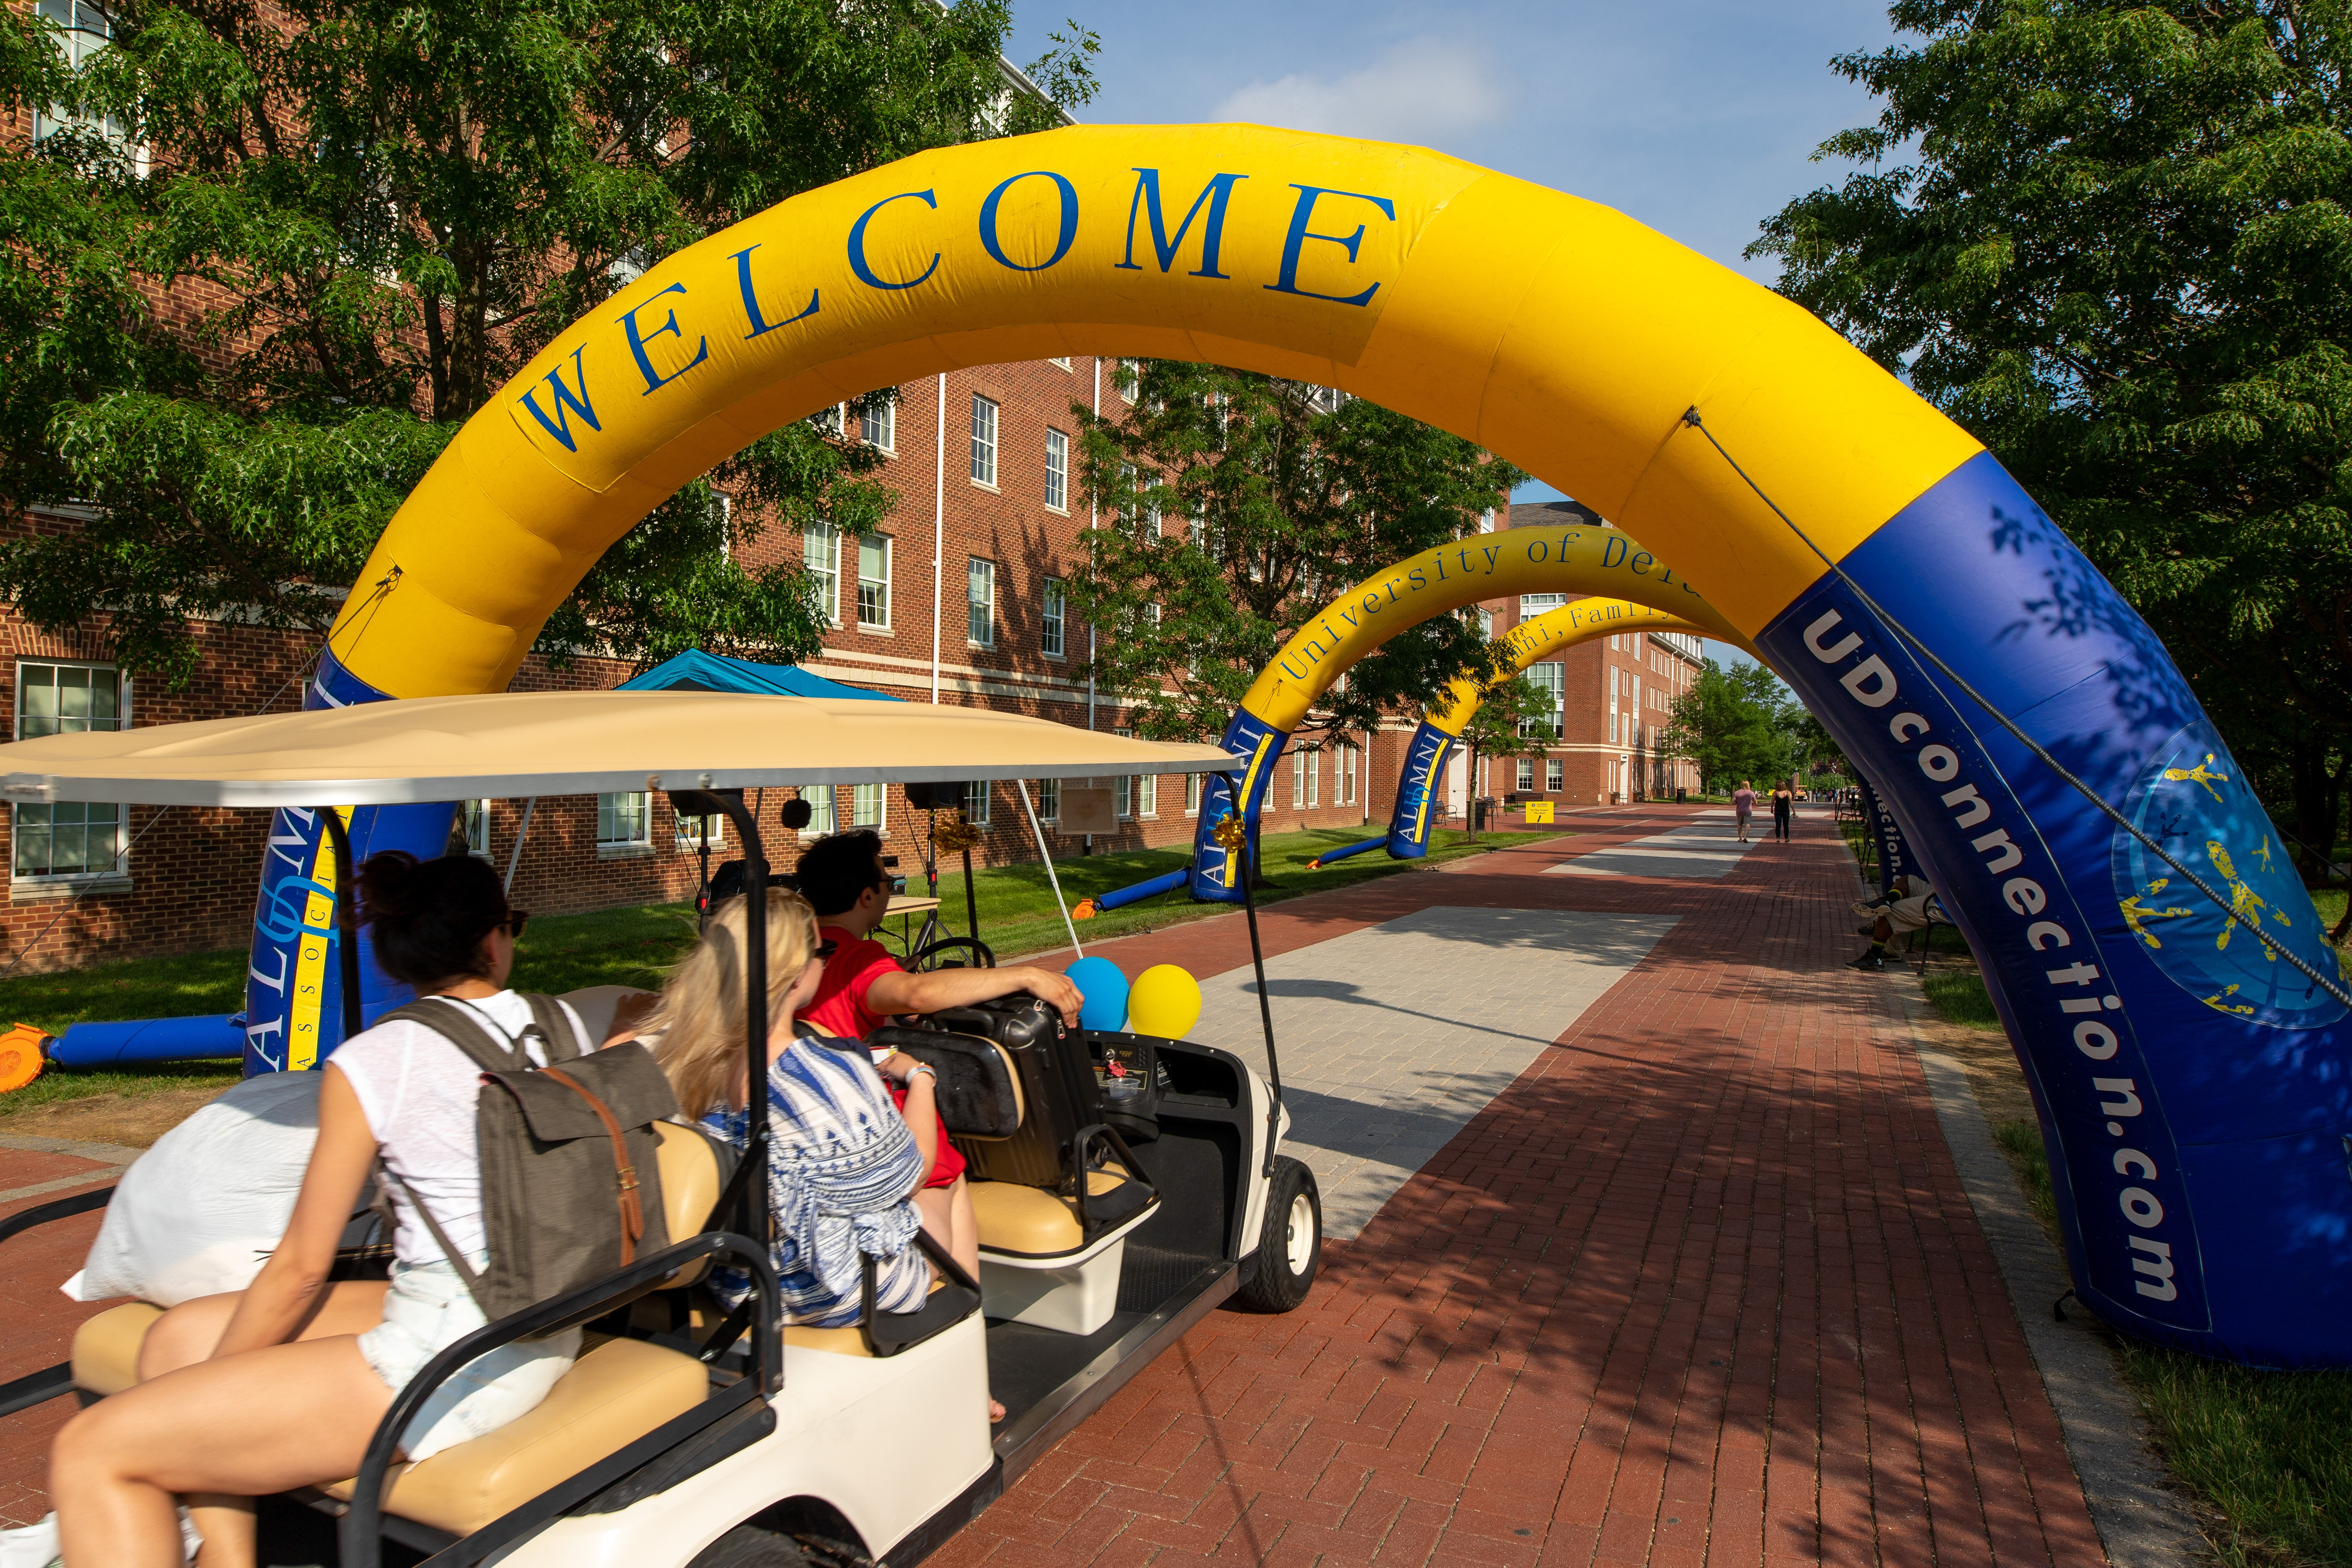 Arrival Survival at Alumni Weekend means you have help moving into the dorm this time